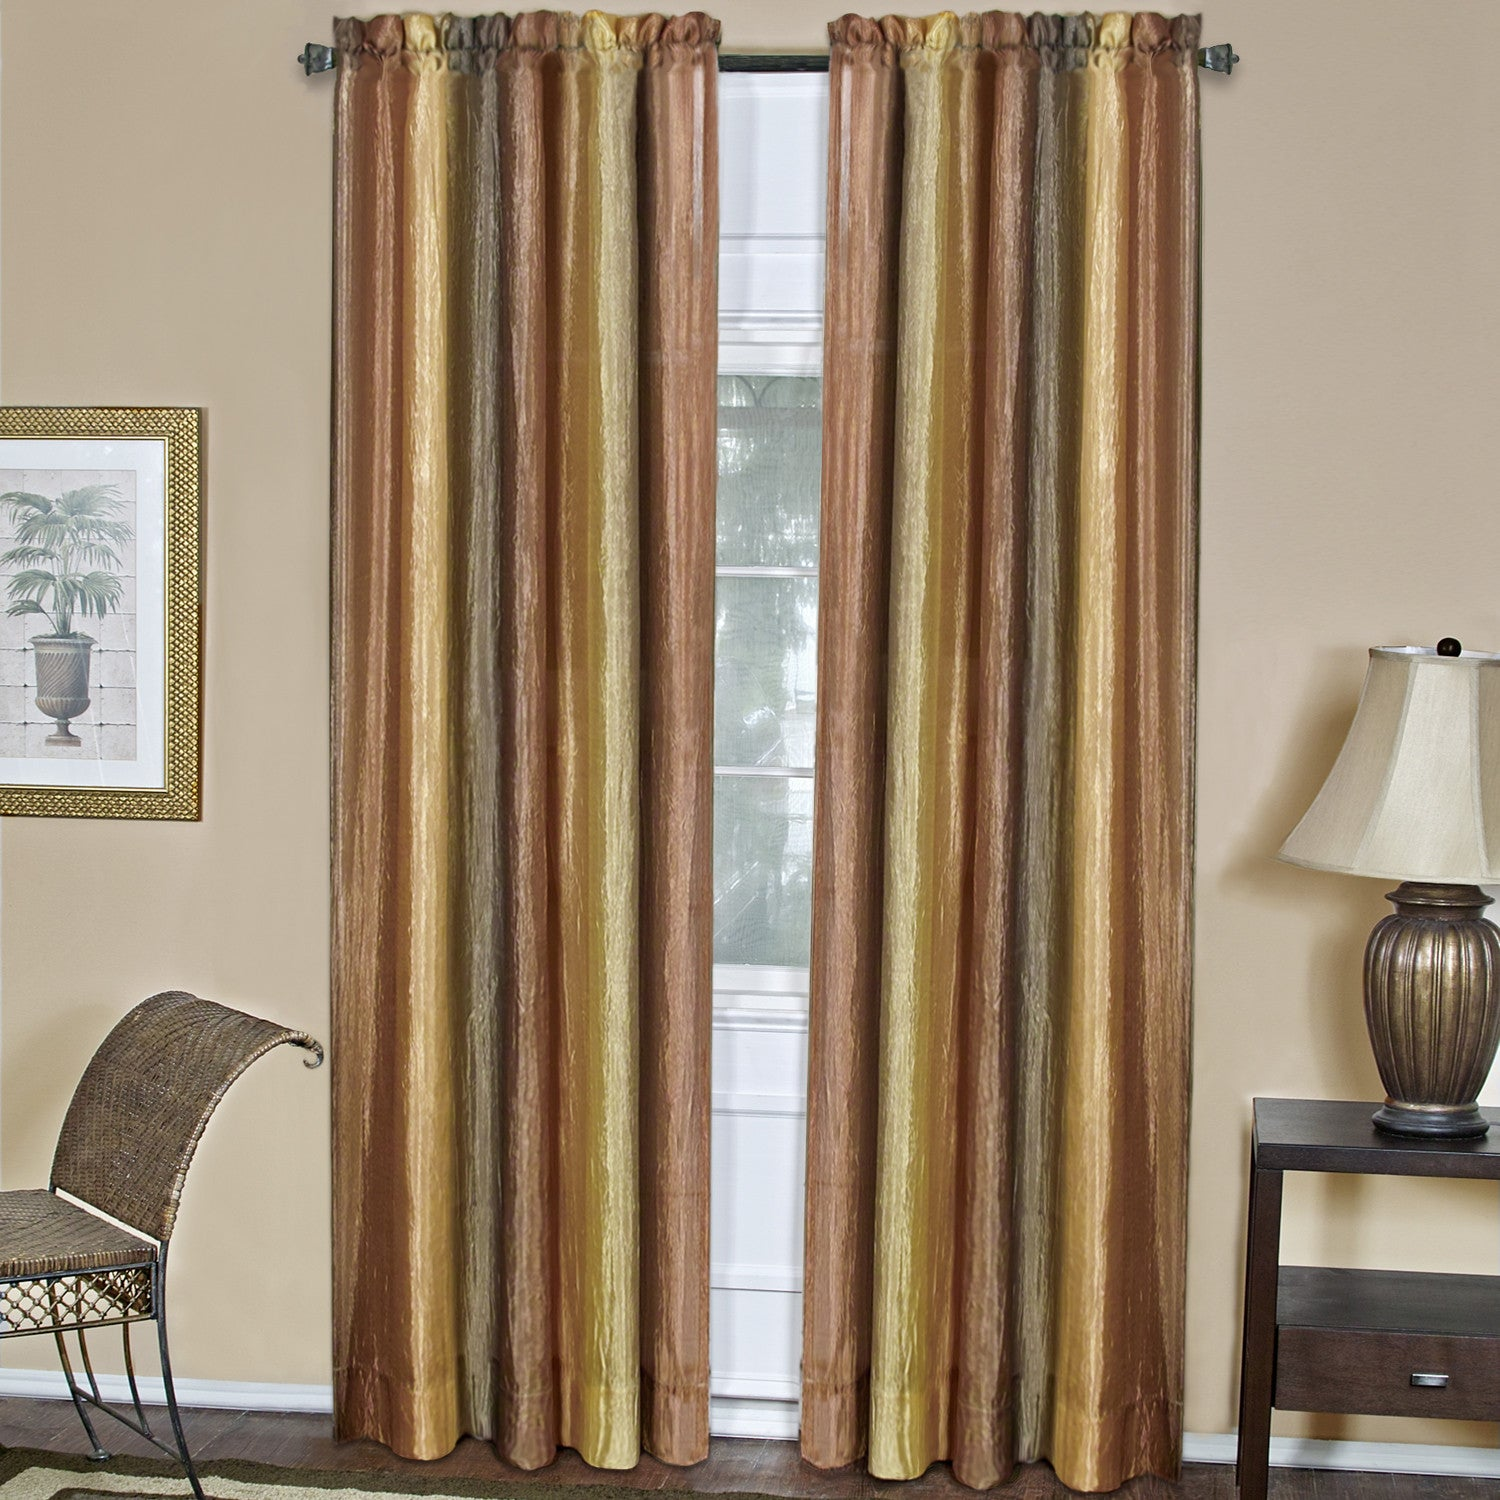 Ombre Rod Pocket Panel - Panel   050x063 Autumn C31358- Marburn Curtains